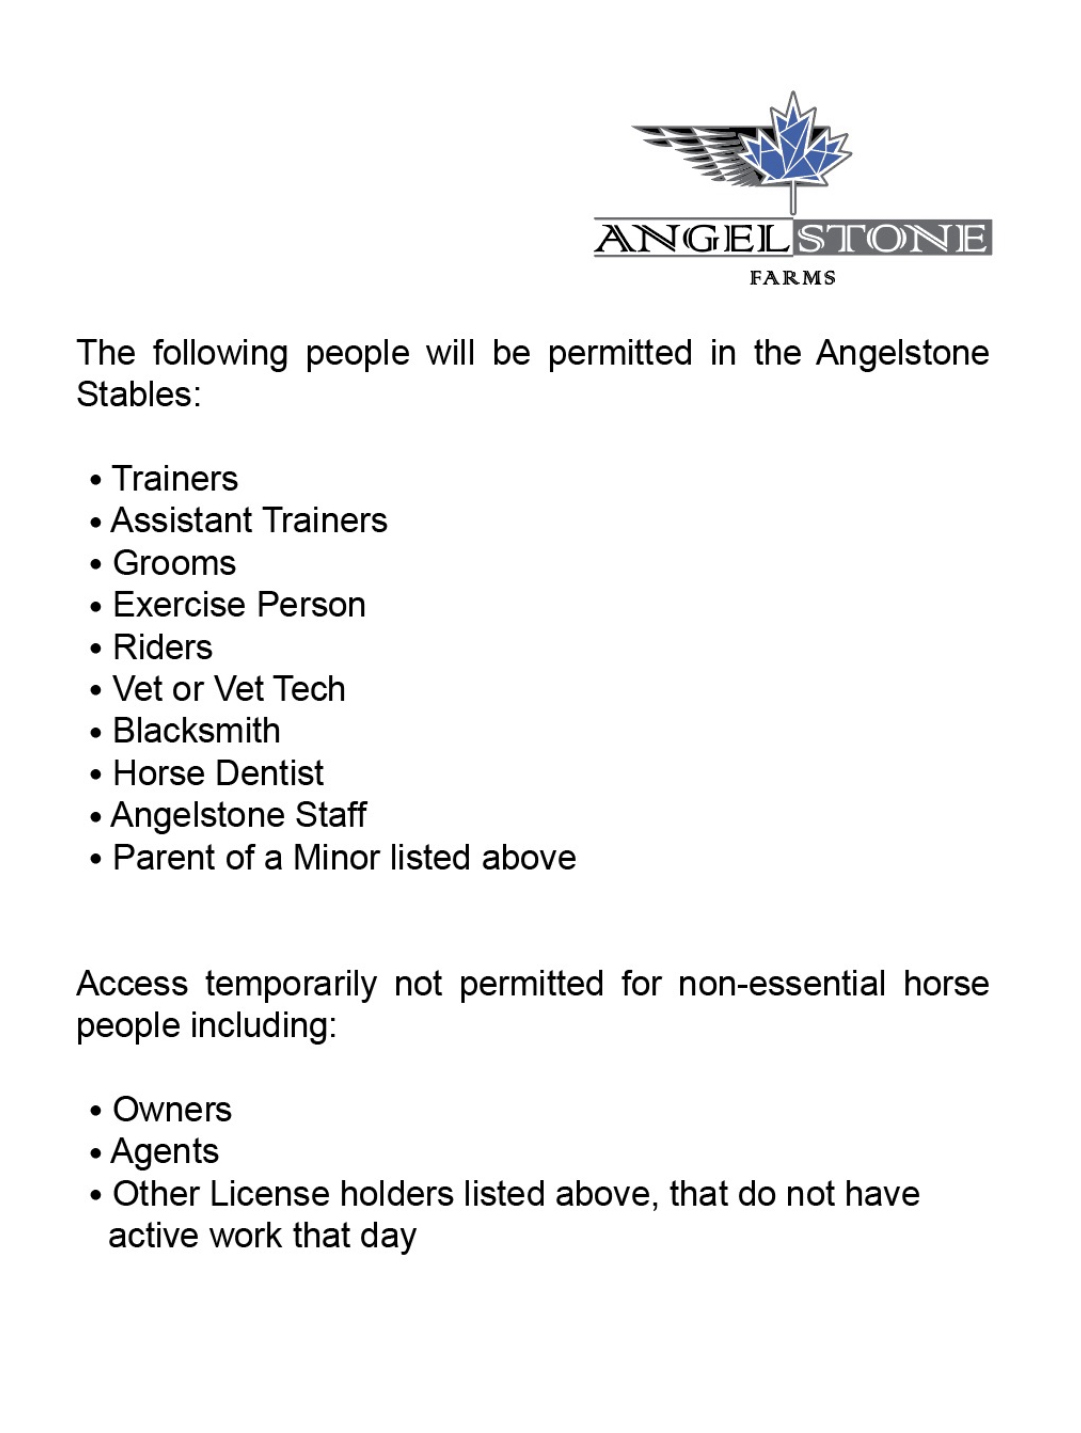 2020.07.17.99.99 Events Angelstone COVID-19 Updates Rules & Regulations 2